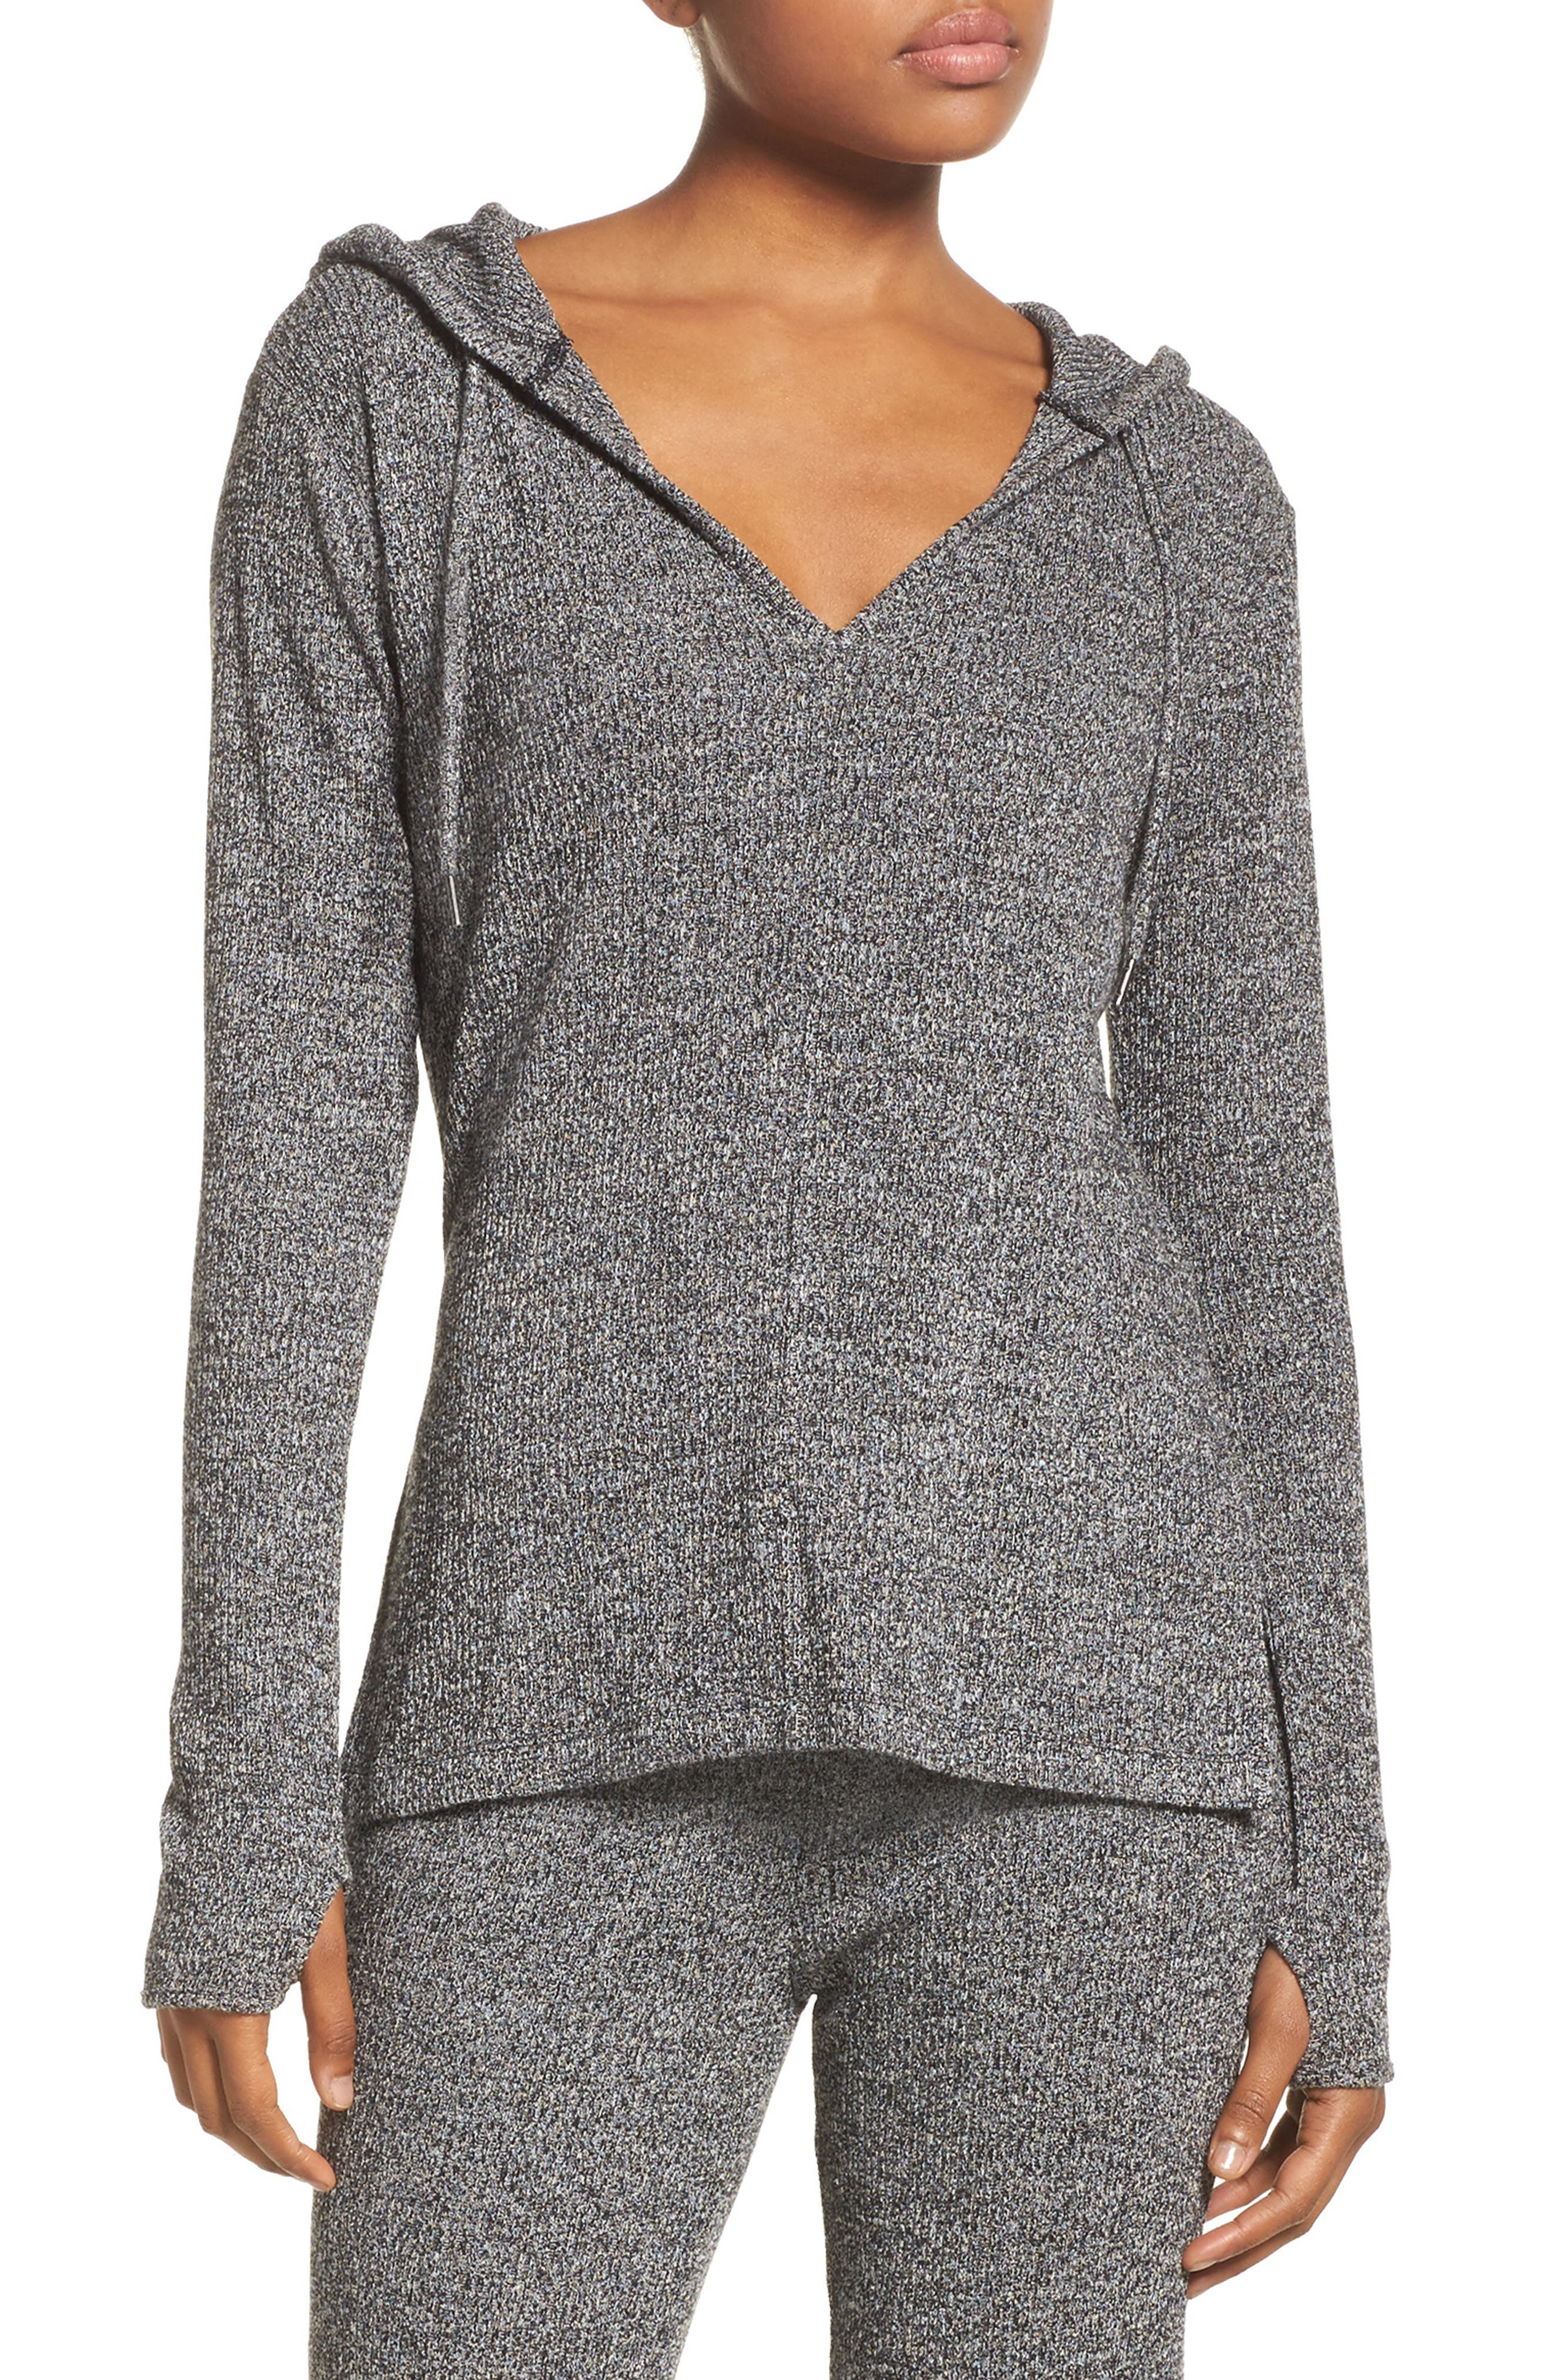 Mantra Hooded Pullover Top,                             Main thumbnail 1, color,                             Black Heather